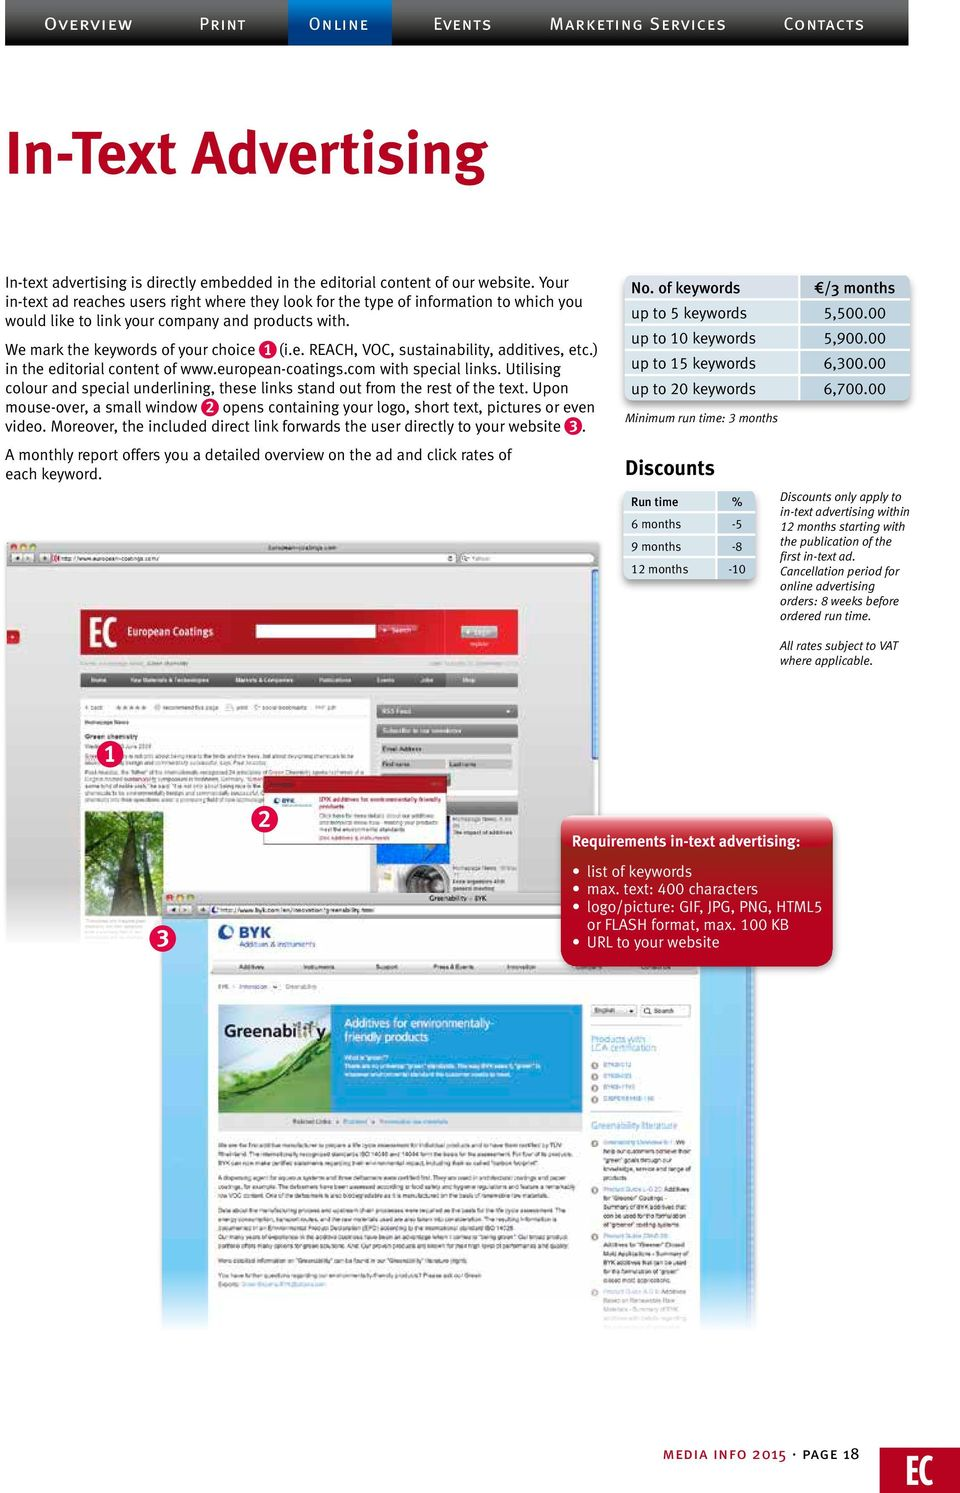 ) in the editorial content of www.european-coatings.com with special links. Utilising colour and special underlining, these links stand out from the rest of the text.